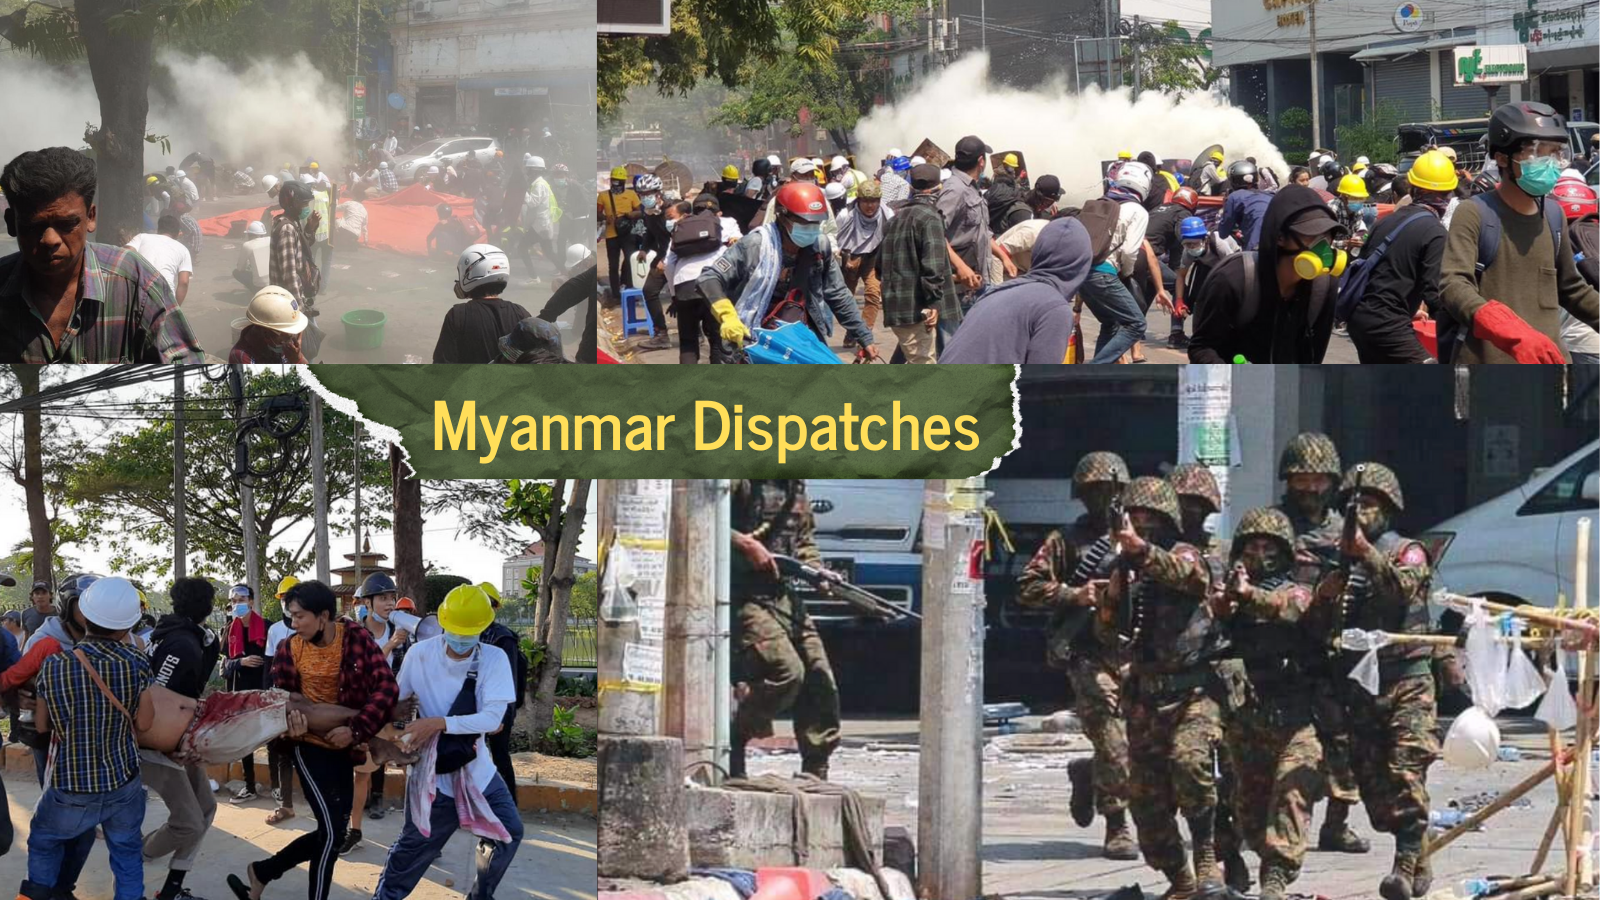 Myanmar dispatches: 'we need humanitarian aid in Min Dat right NOW'